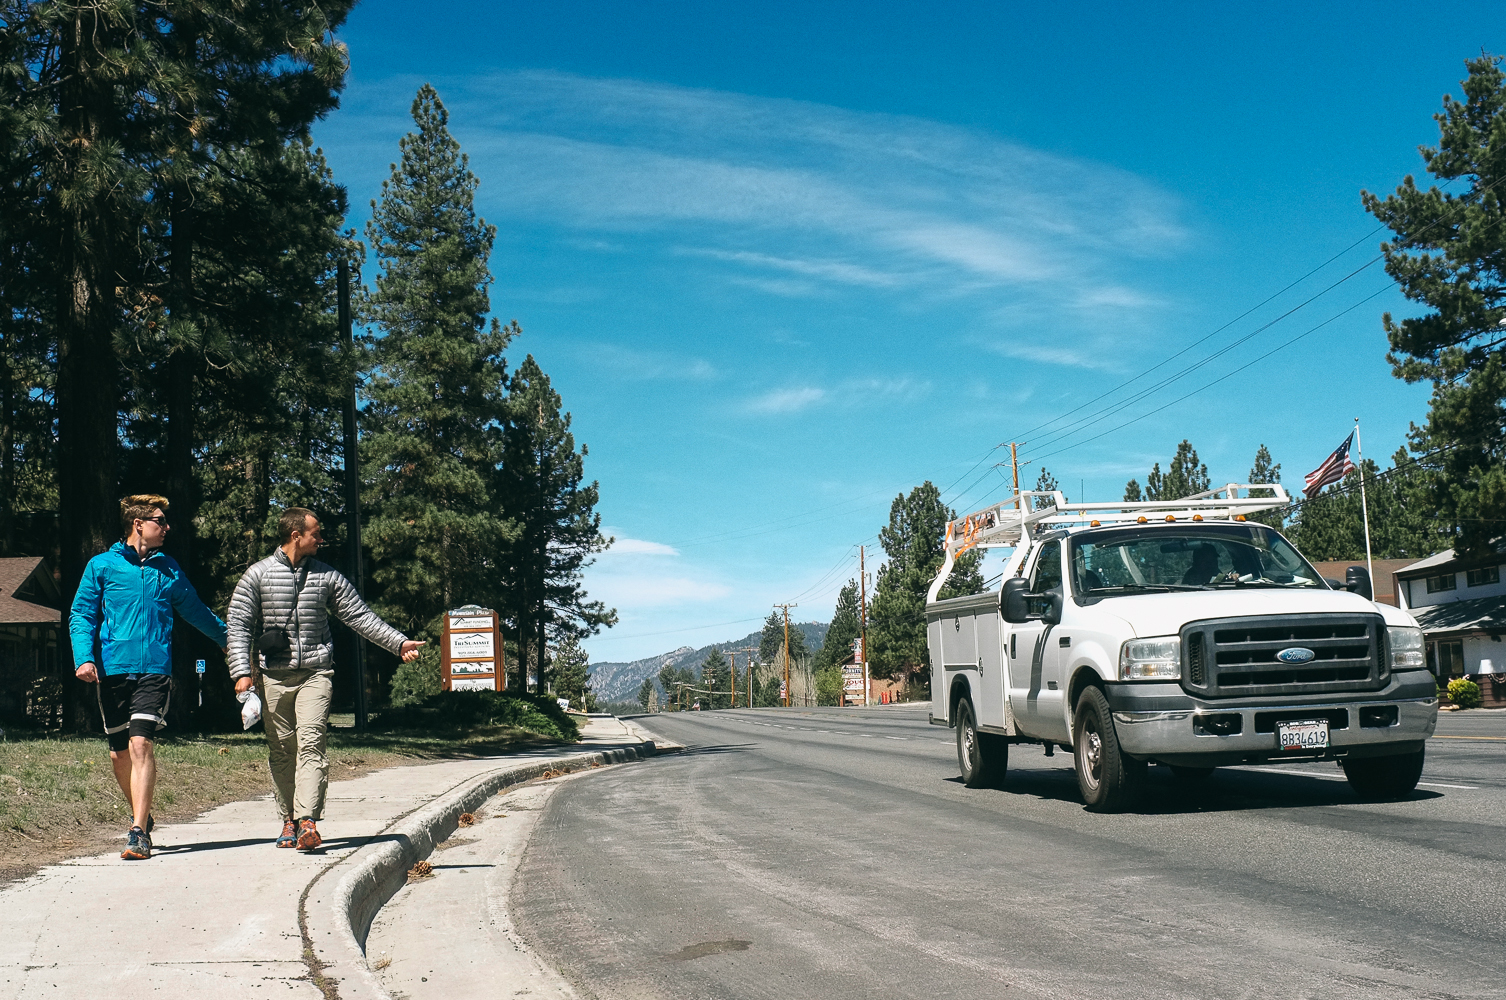 Myself and Half'n'Half trying to walk and hitch a ride in Big Bear City, CA